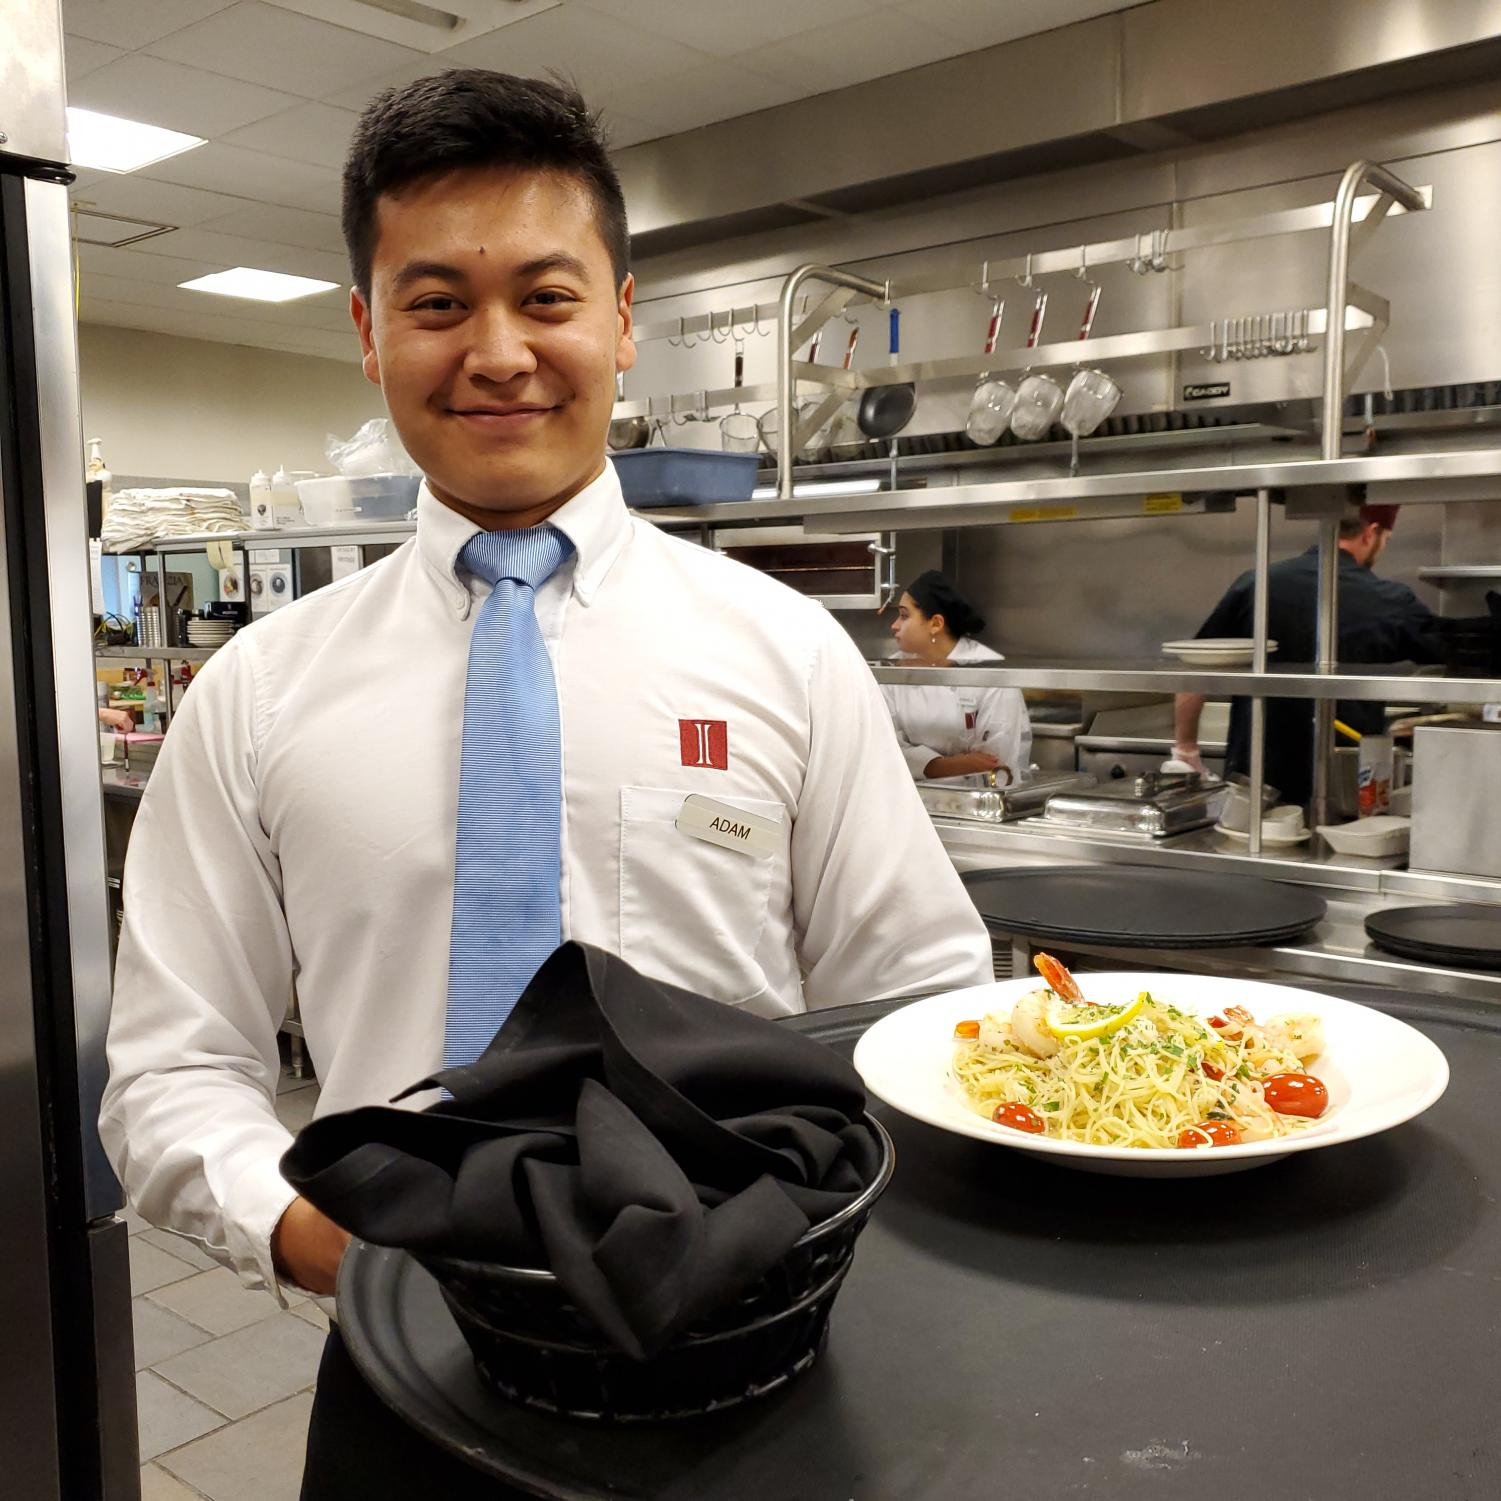 Senior Adam Shi stops for a photo before serving a meal in the dining room.